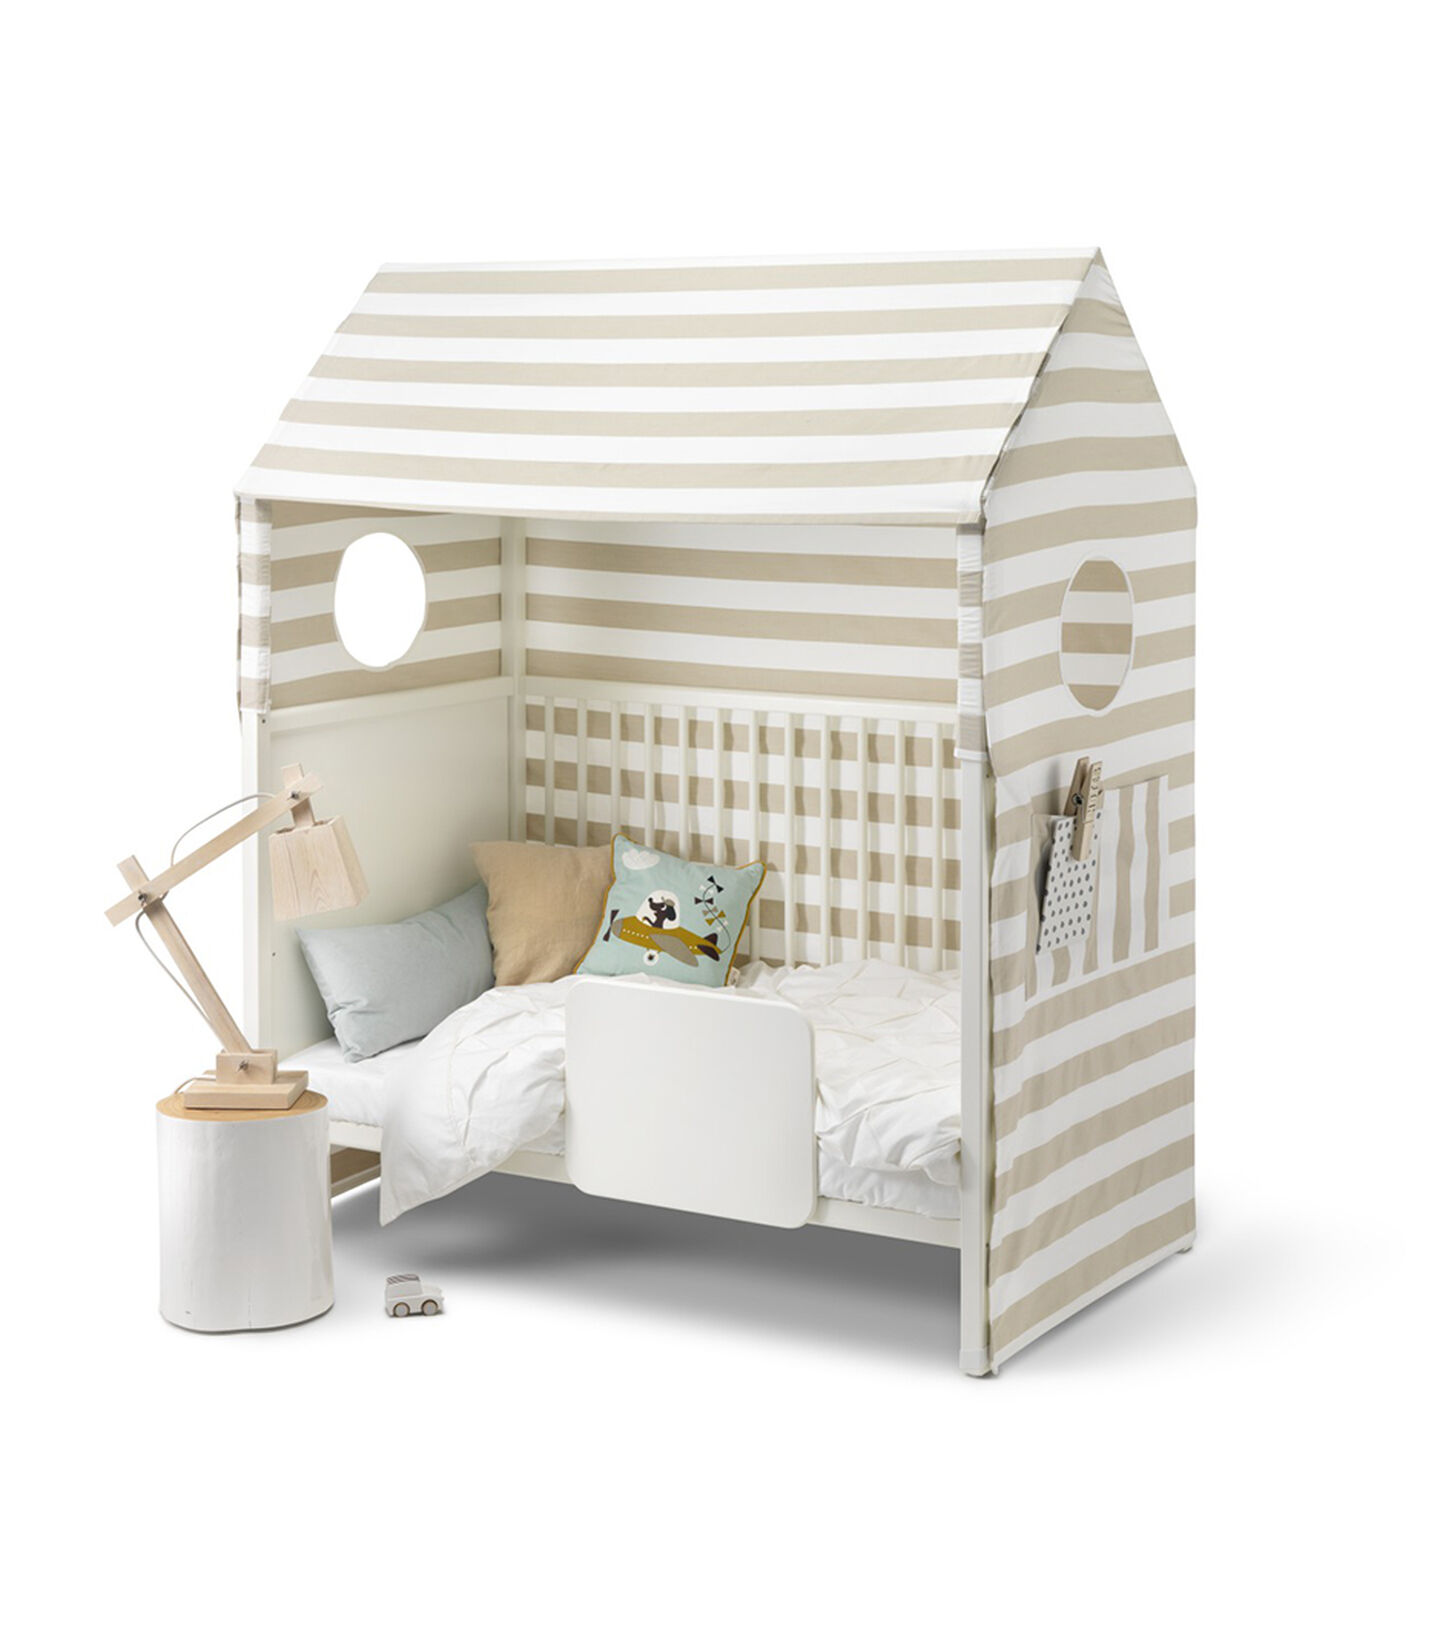 Stokke® Home™ Bed, White. With Stokke® Home™ Bed Tent textile.